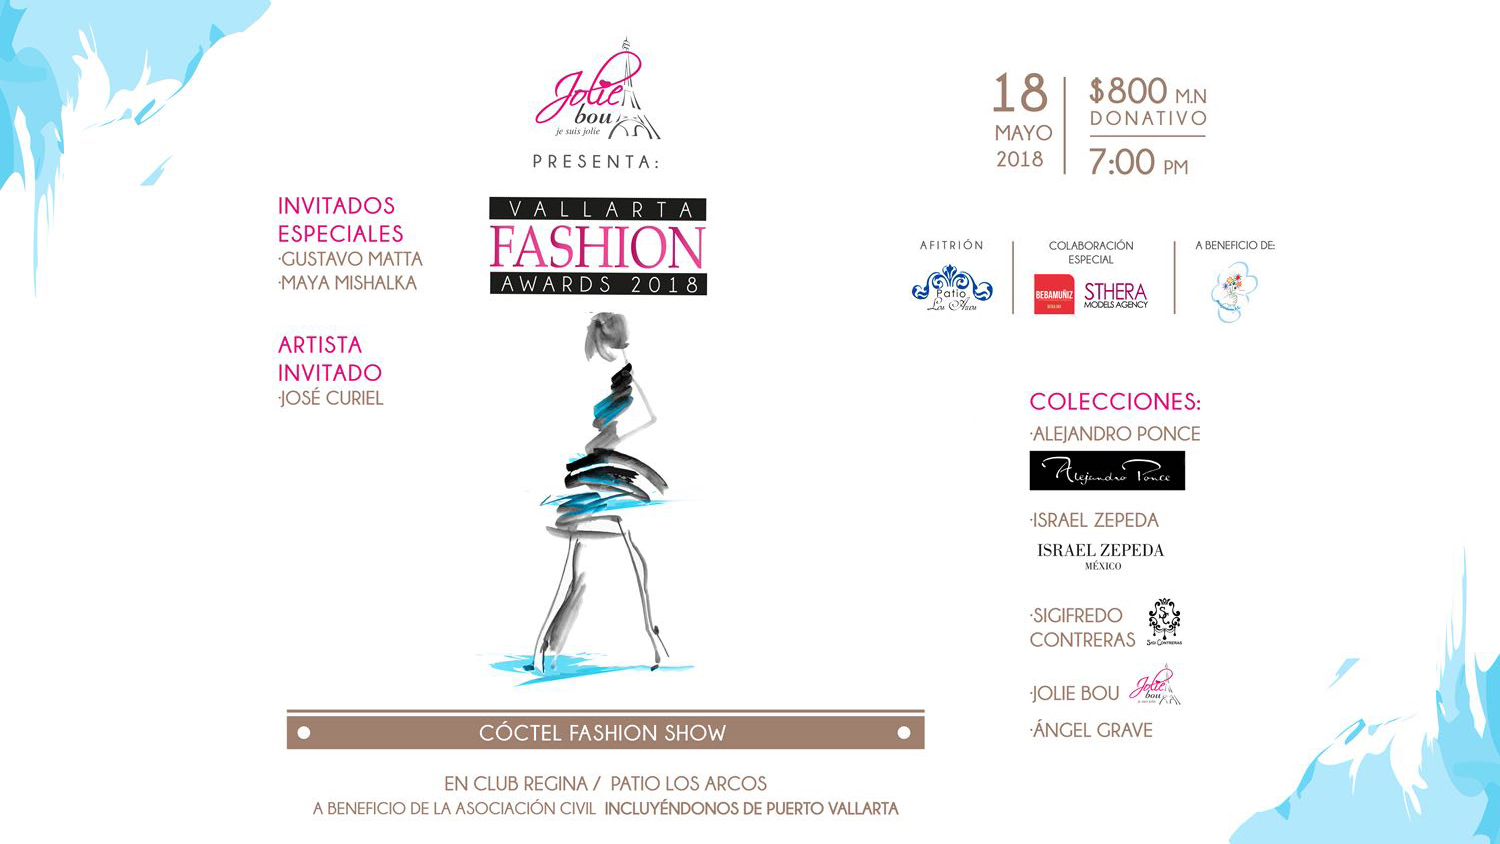 Vallarta Fashion Awards 2018